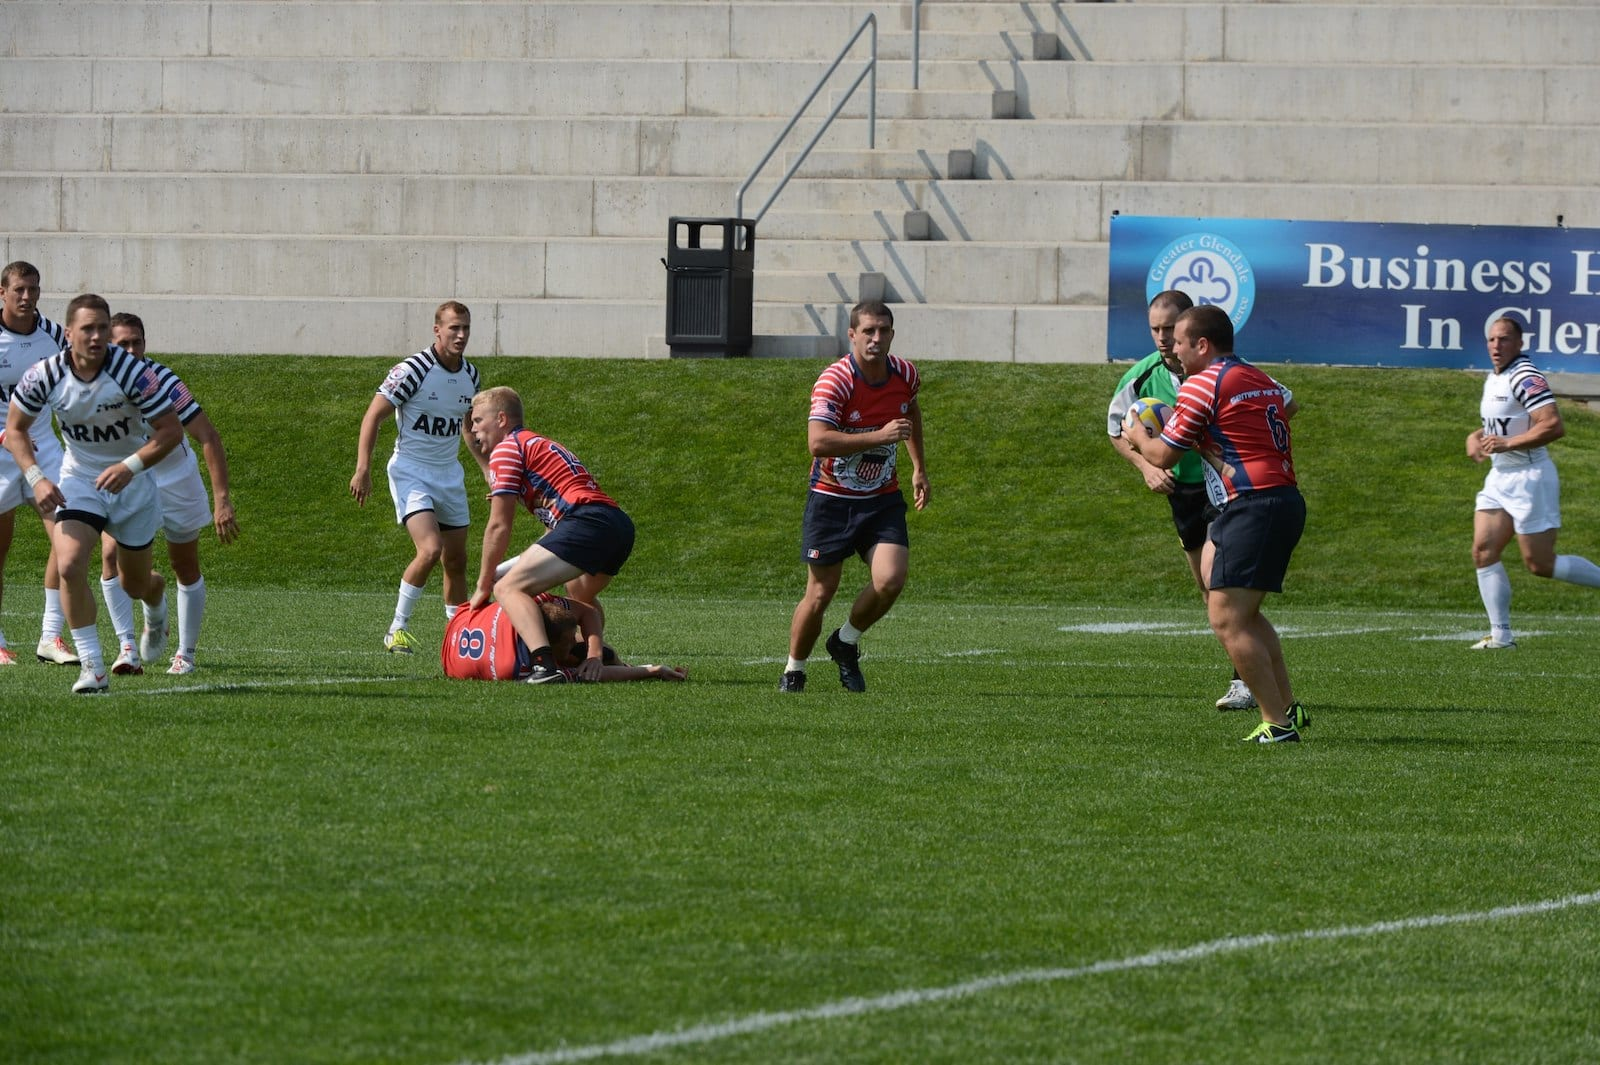 Infinity Park at Glendale Army vs Coast Guard Rugby